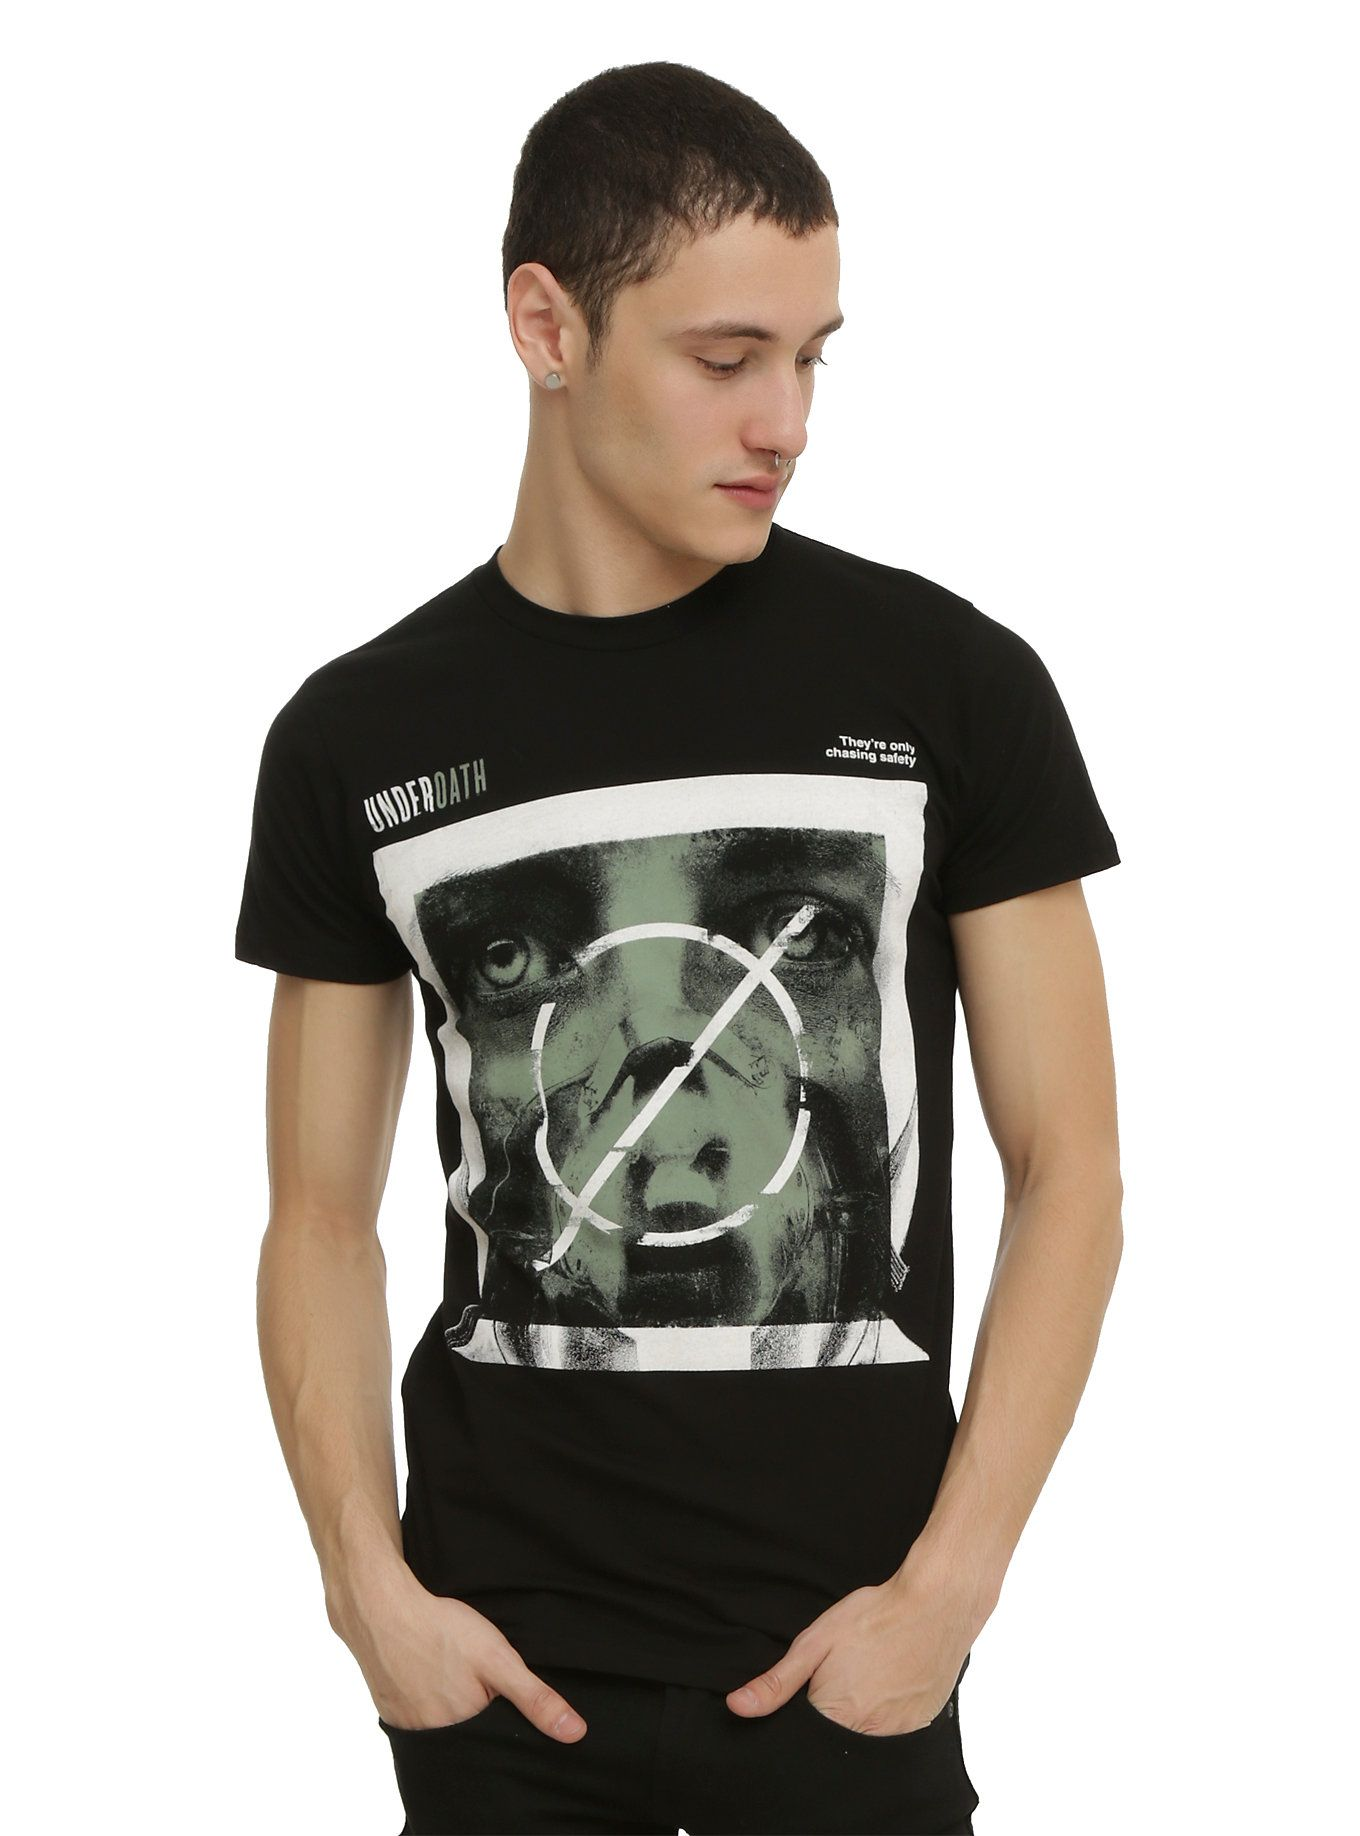 Underoath They're Only Chasing Safety TShirt Shirts, T